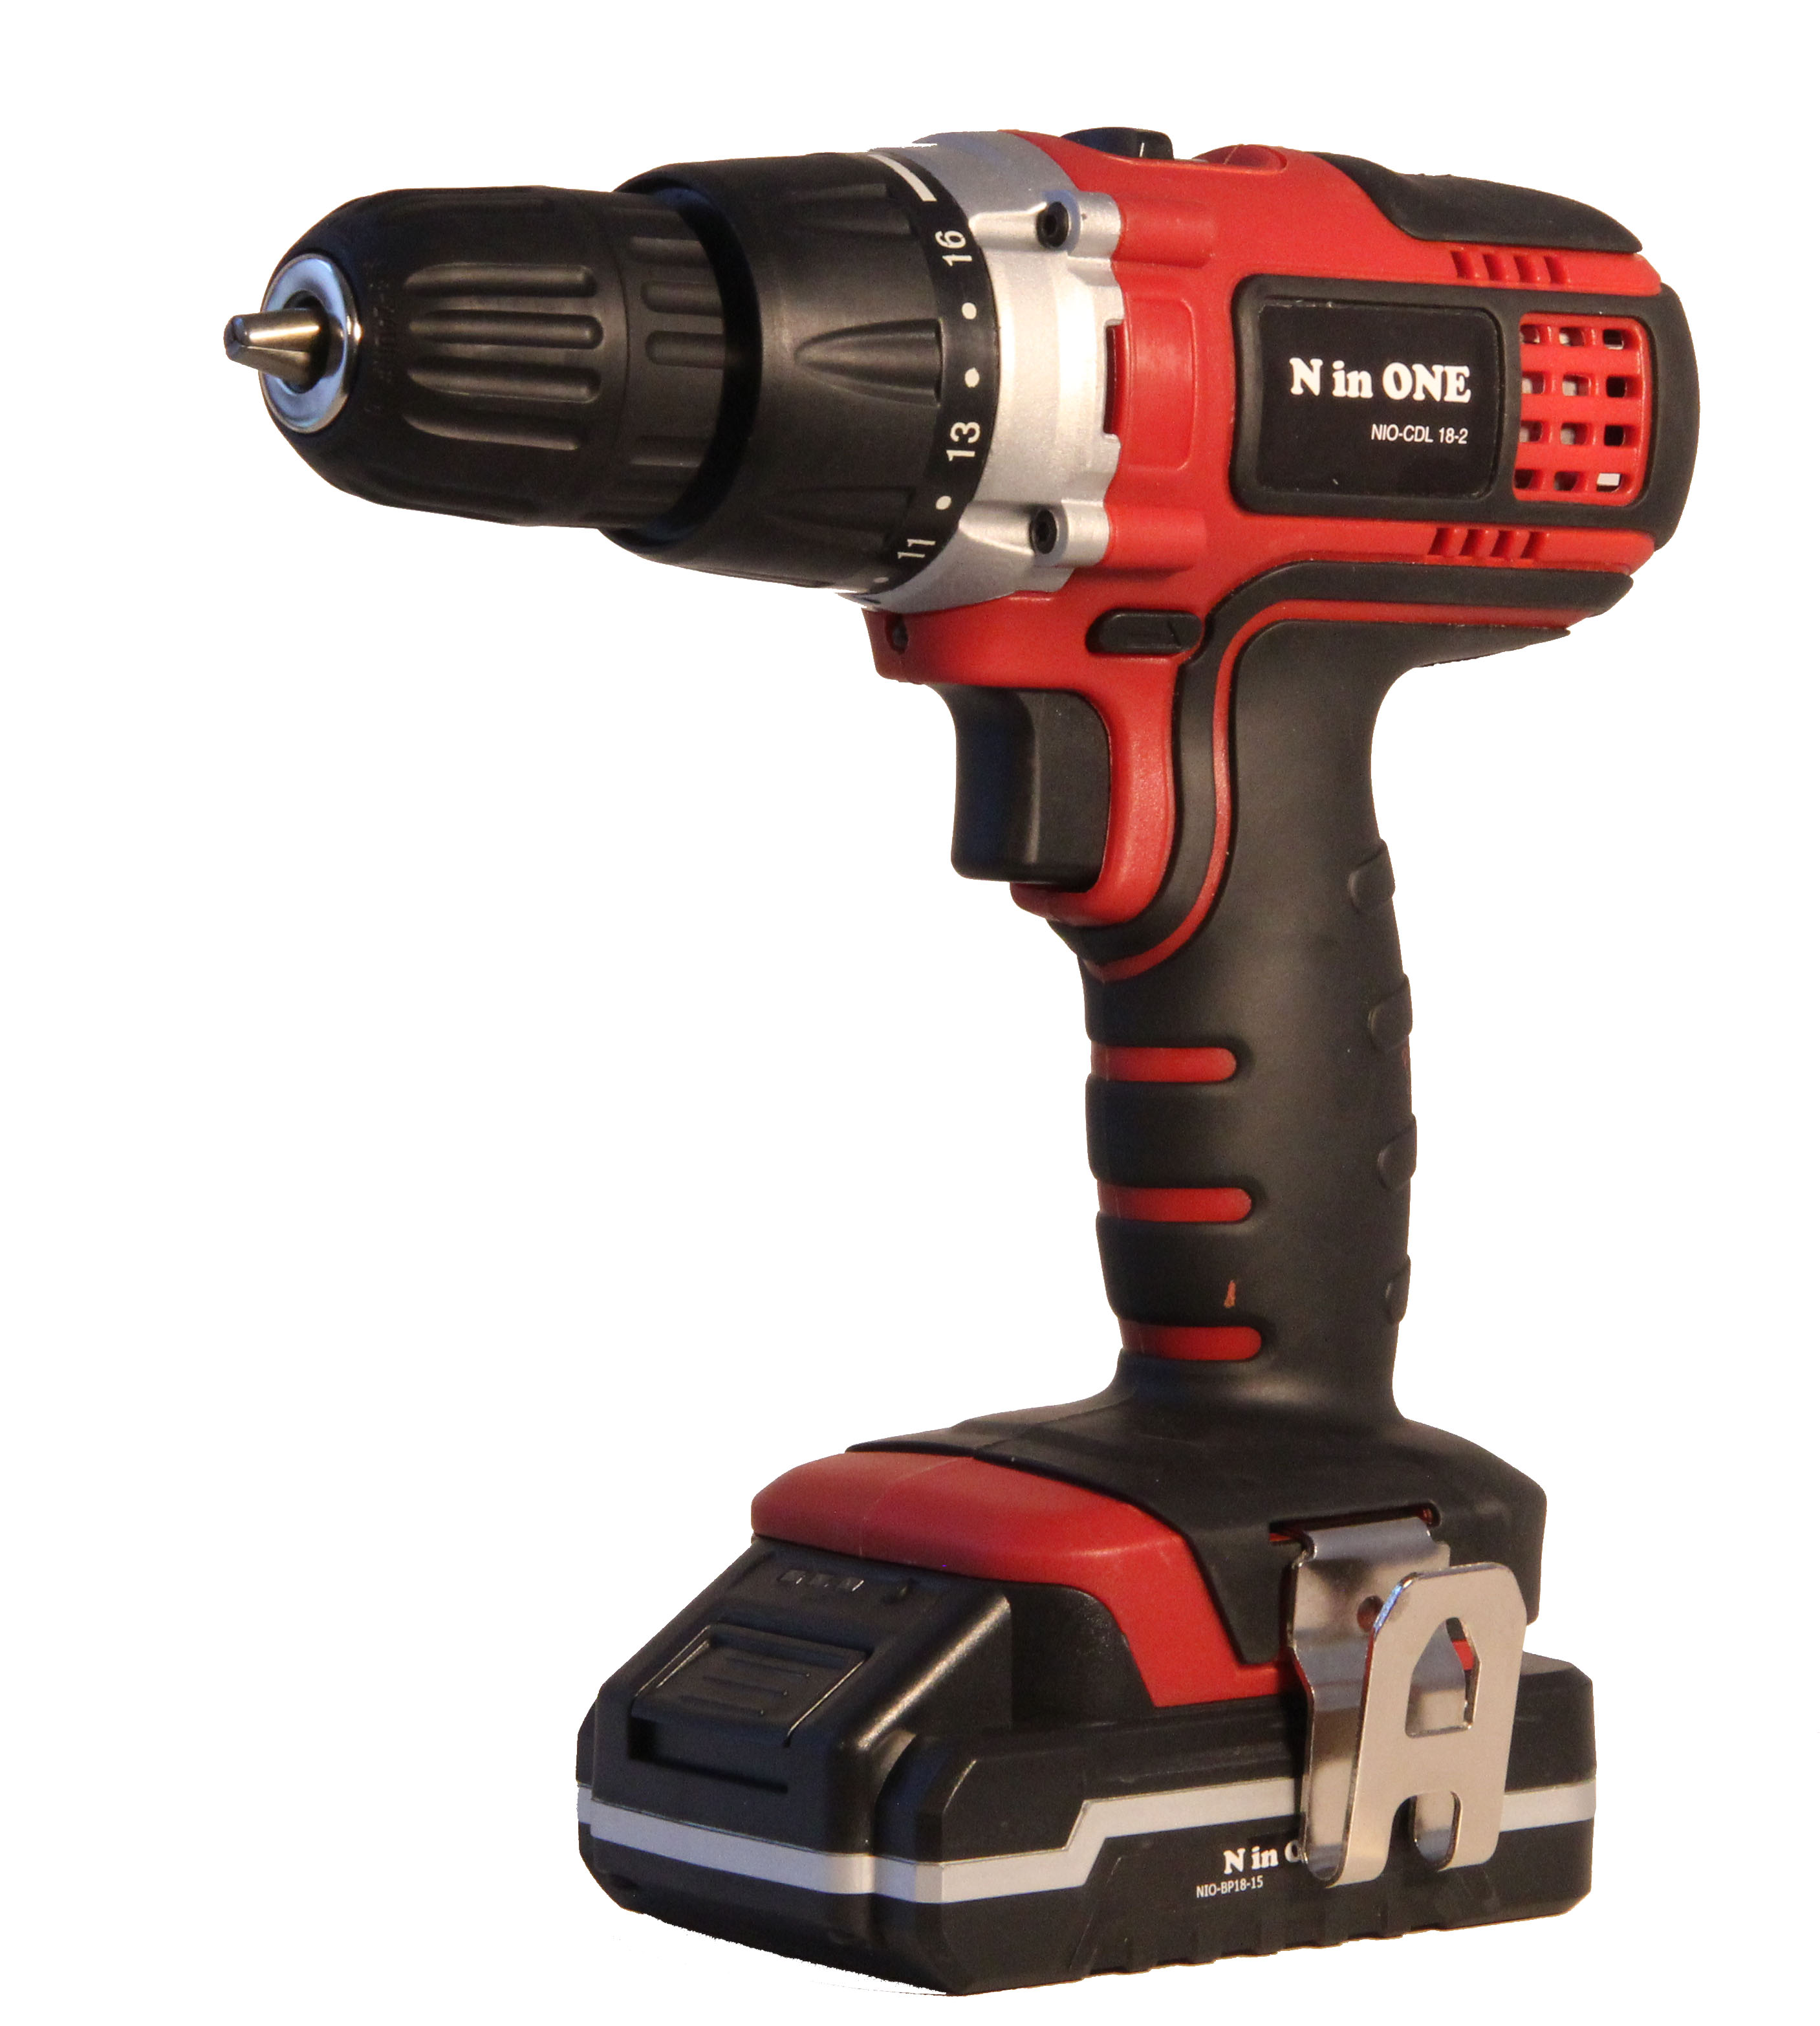 NinONE 18V Li-Ion 2.0A Battery Double Speed 45Nm Impact Function Heavy Duty Cordless <strong>Drill</strong>